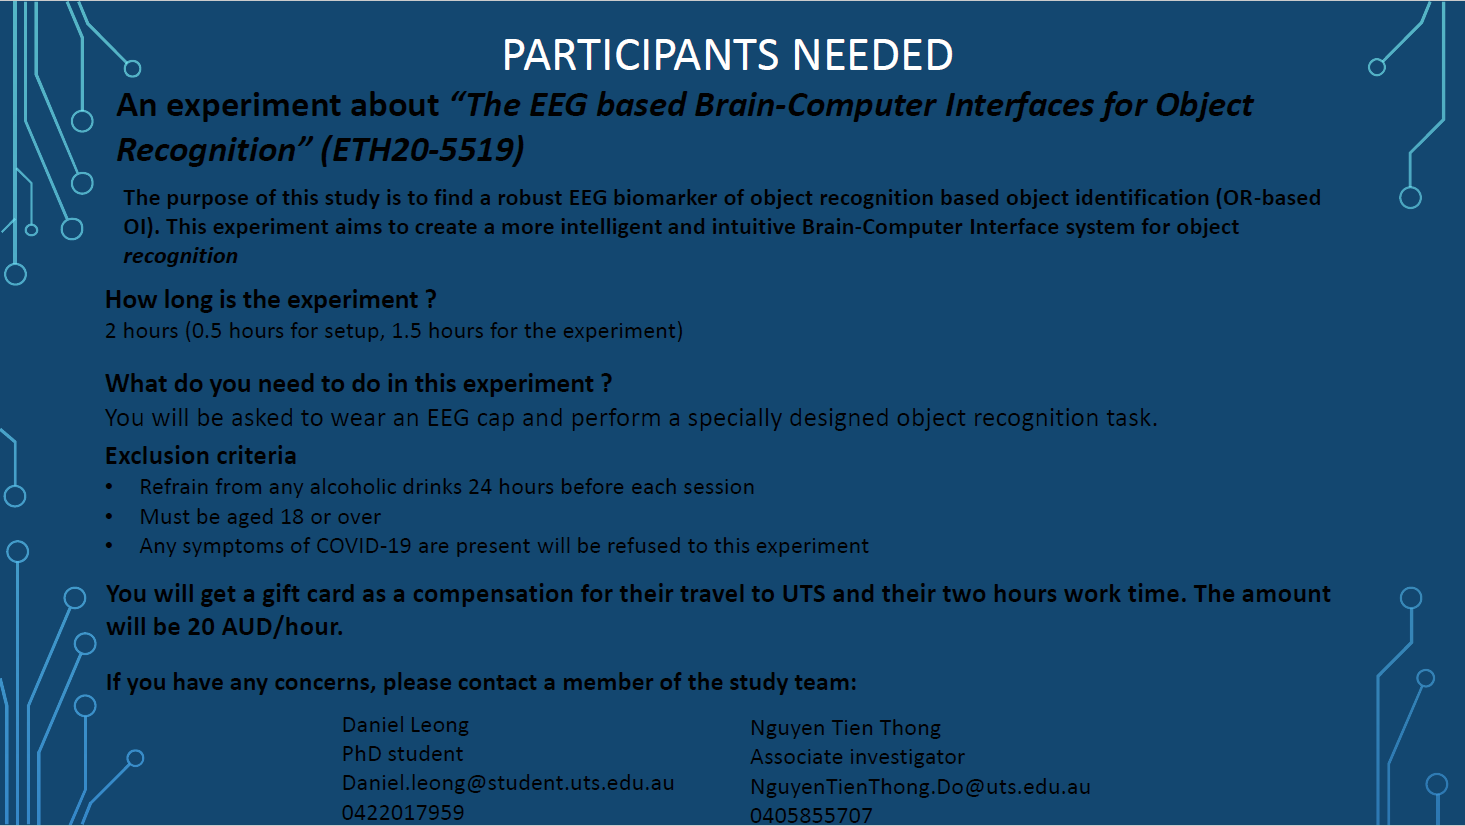 Call for participant